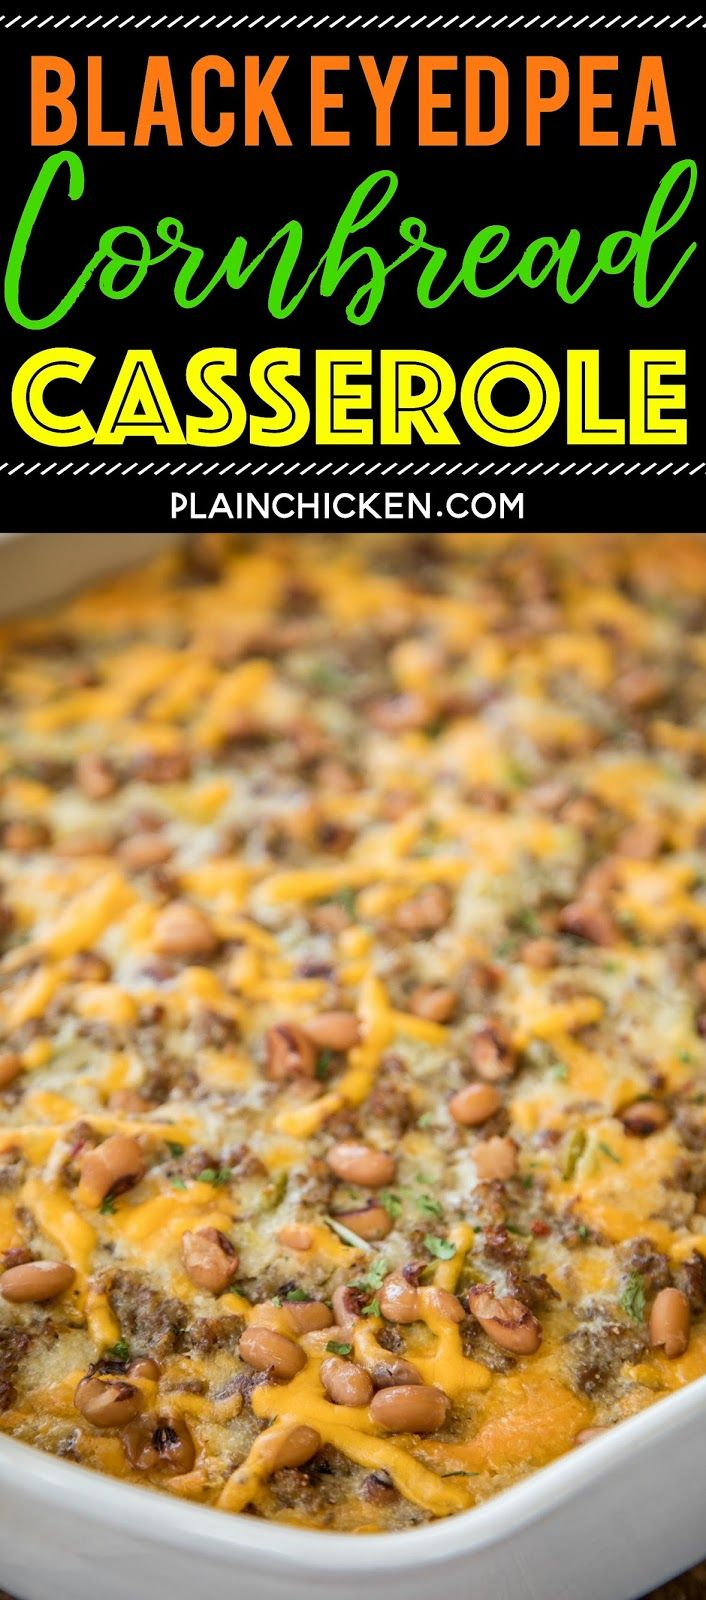 Black Eyed Pea Cornbread Casserole recipe - homemade cornbread loaded with sausage, creamed corn, cheddar cheese, black eyed peas, green chiles, and jalapeños. Perfect for your New Year's Day meal! Can make ahead of time and freeze for up to a month. Everyone LOVES this easy one pan meal!